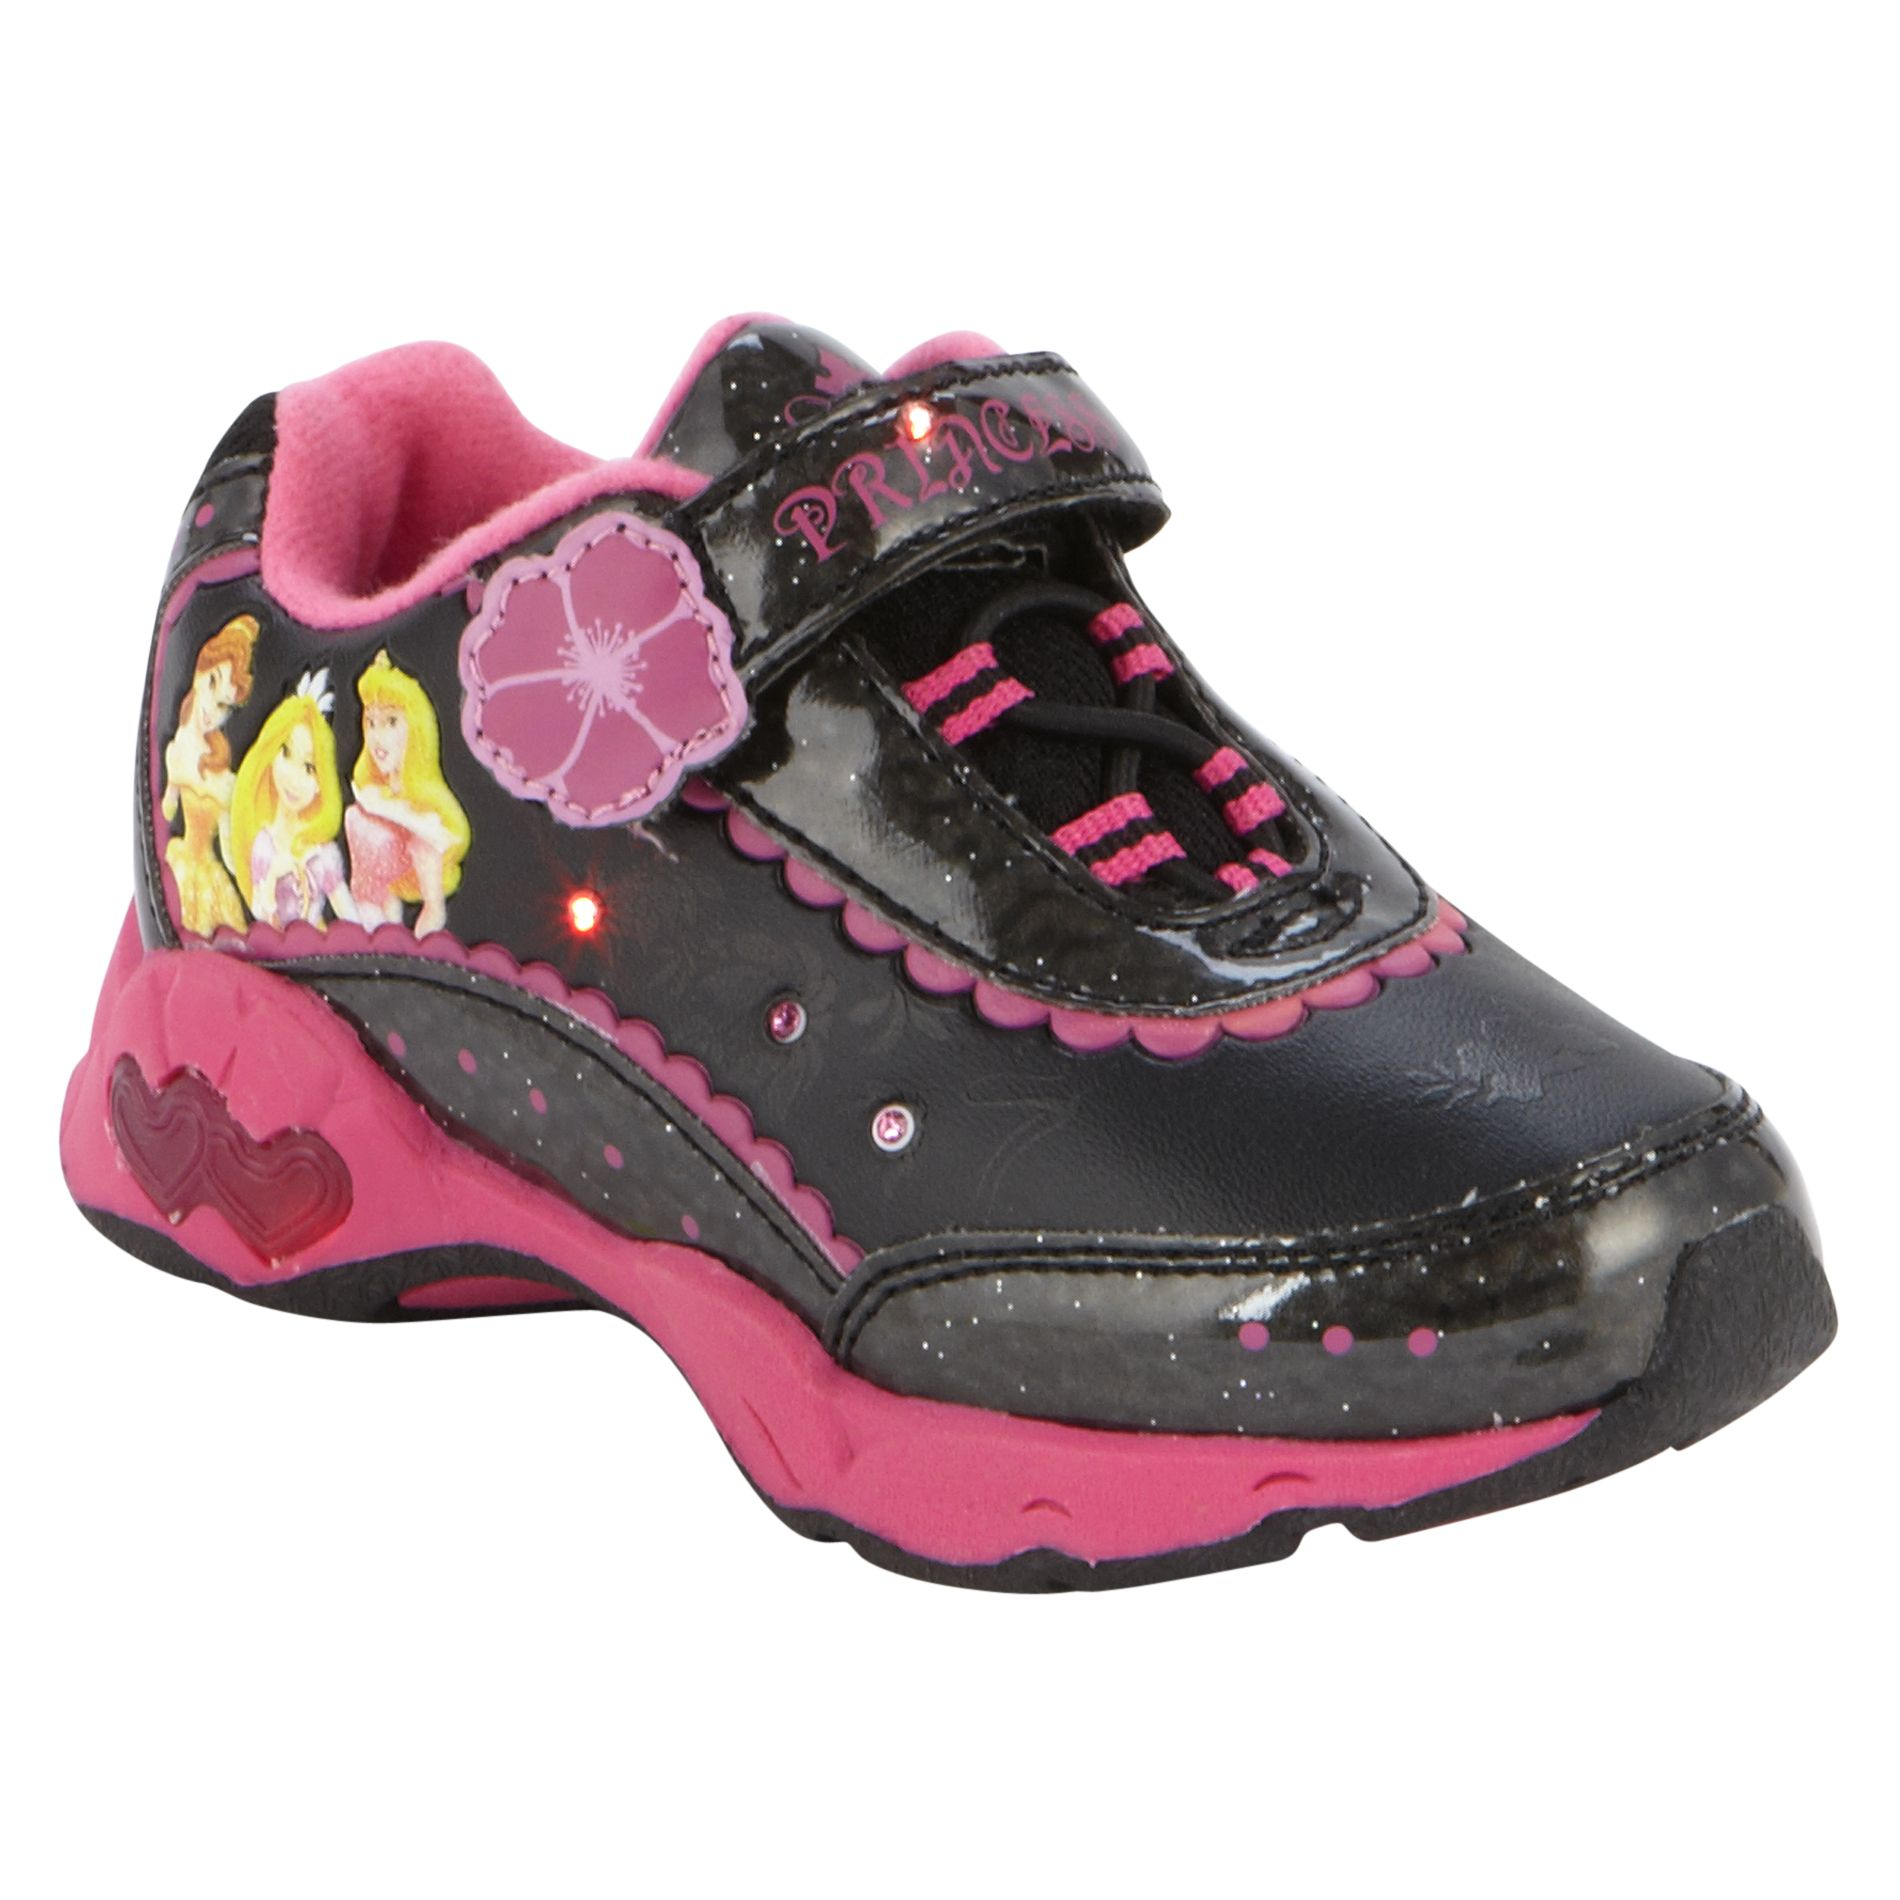 Disney  Toddler Girl's Princess Athletic Shoe - Black